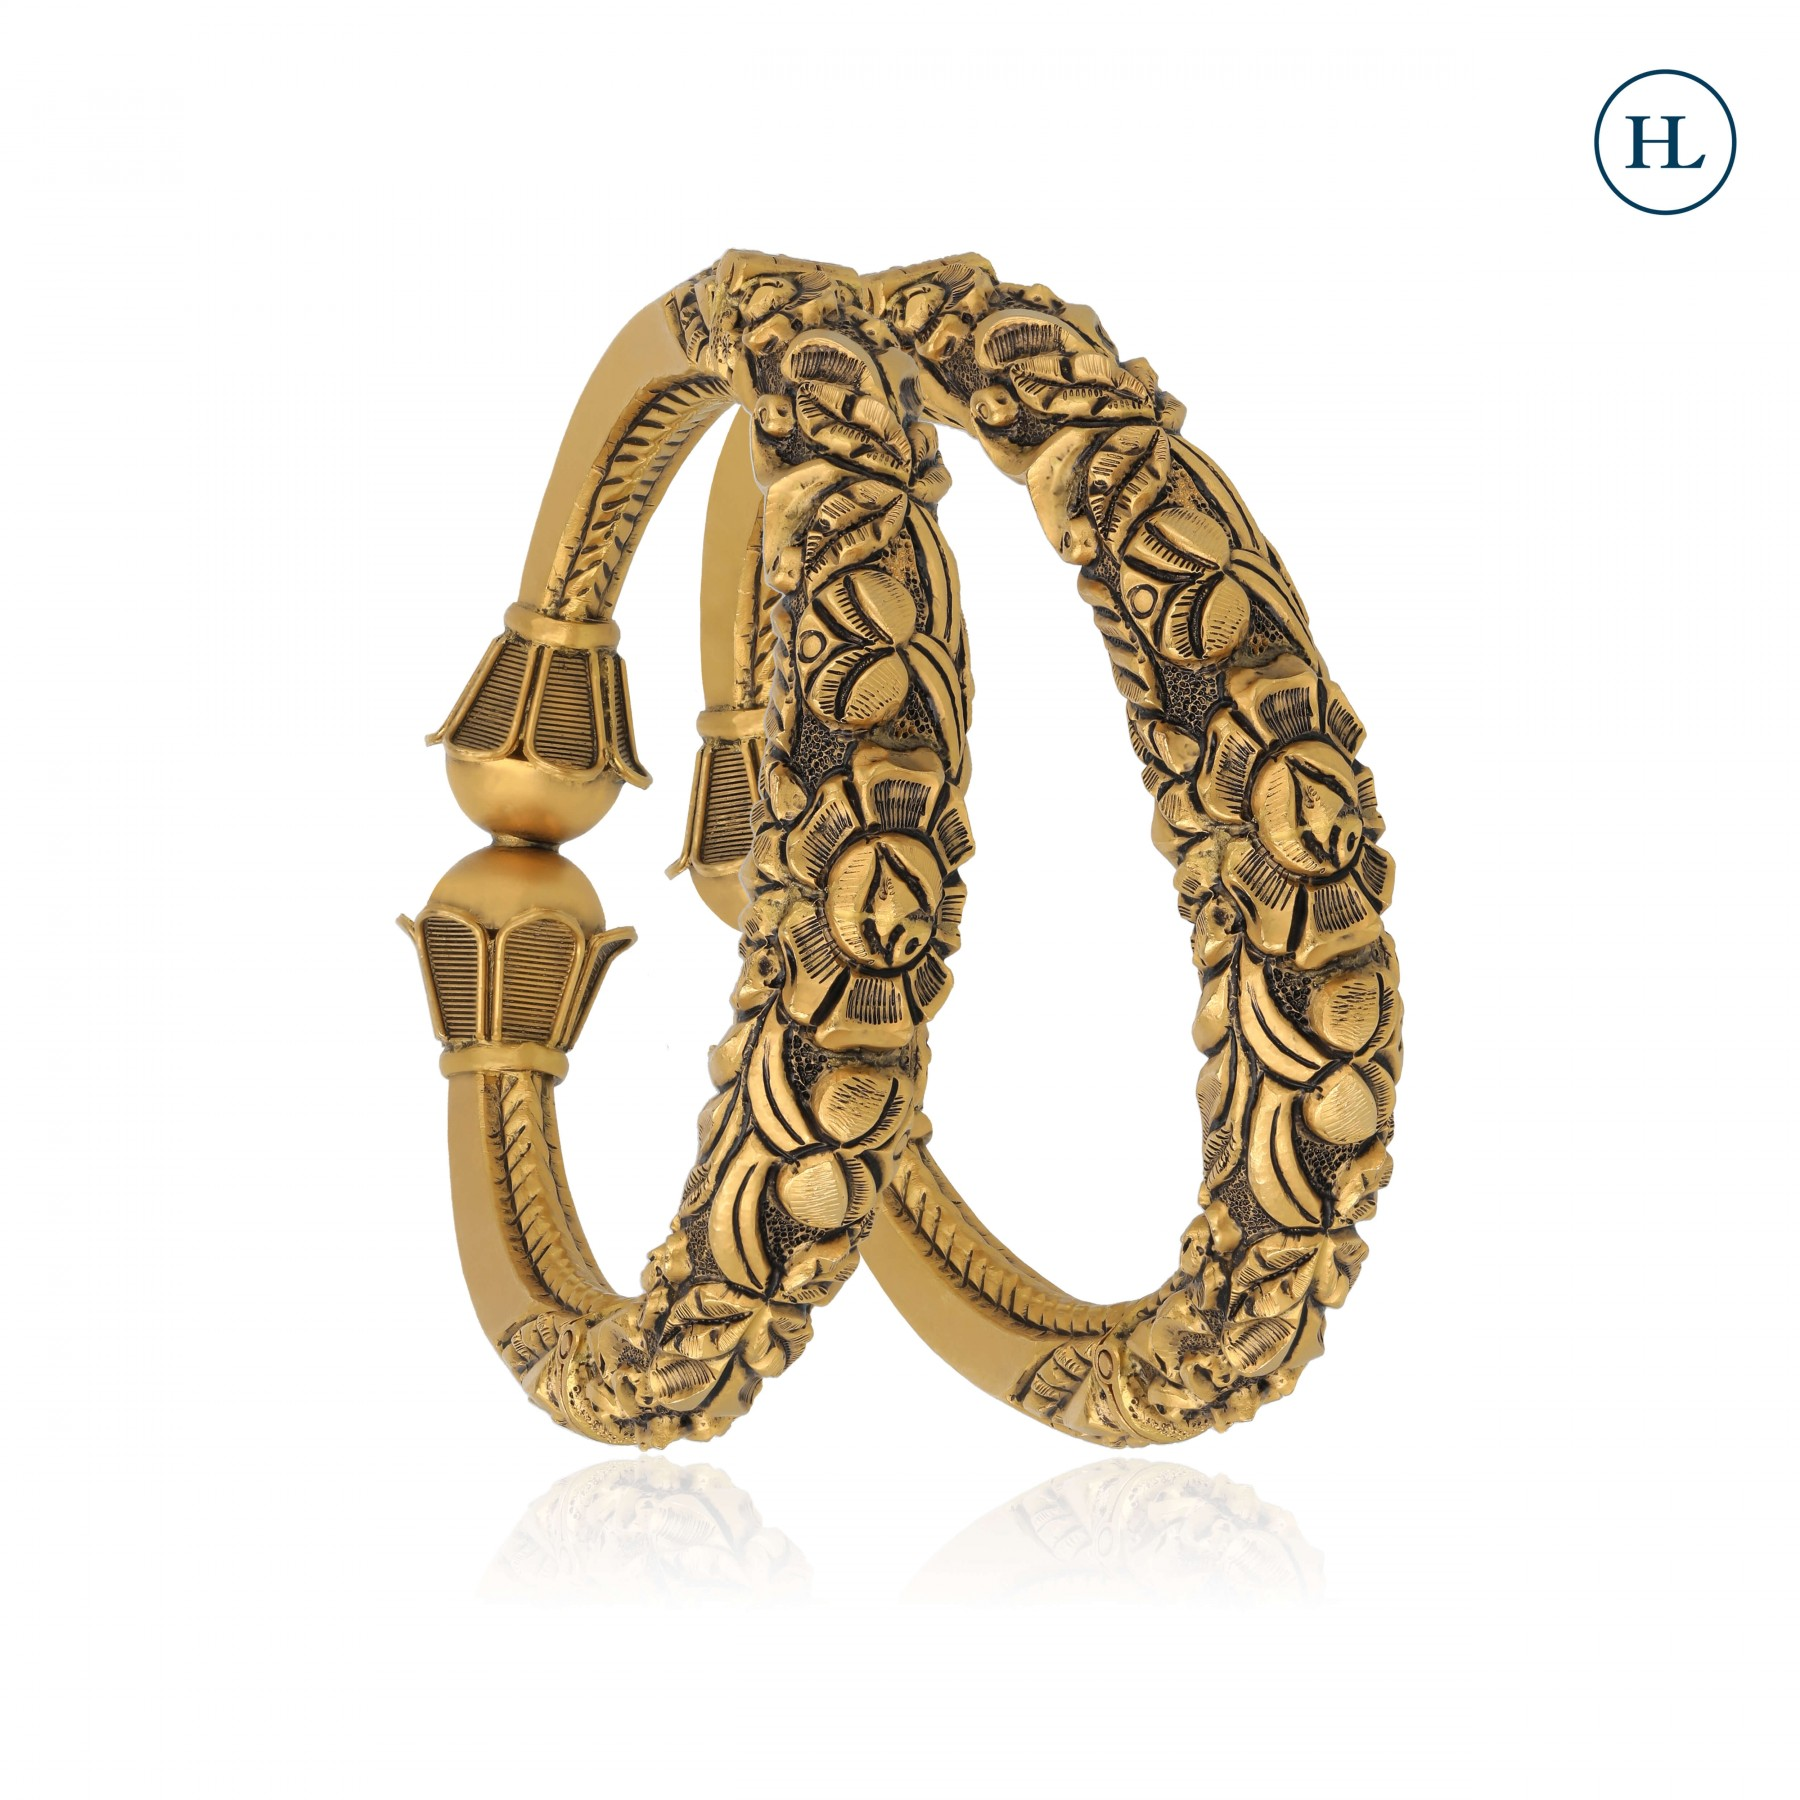 Antique-Styled Flower Openable Gold Bangle Pair